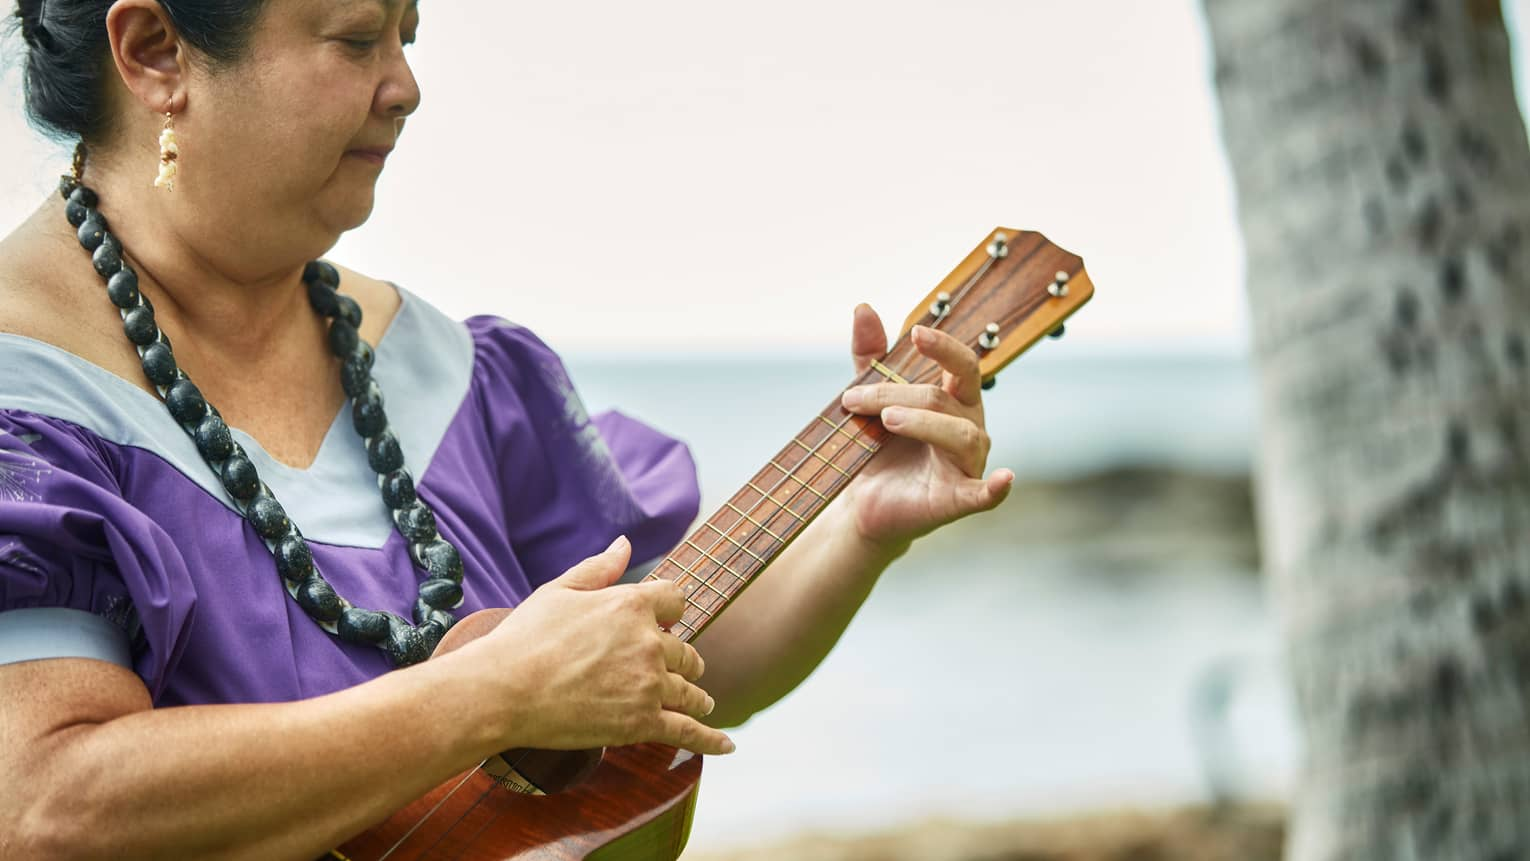 Hawaiian native playing a ukulele